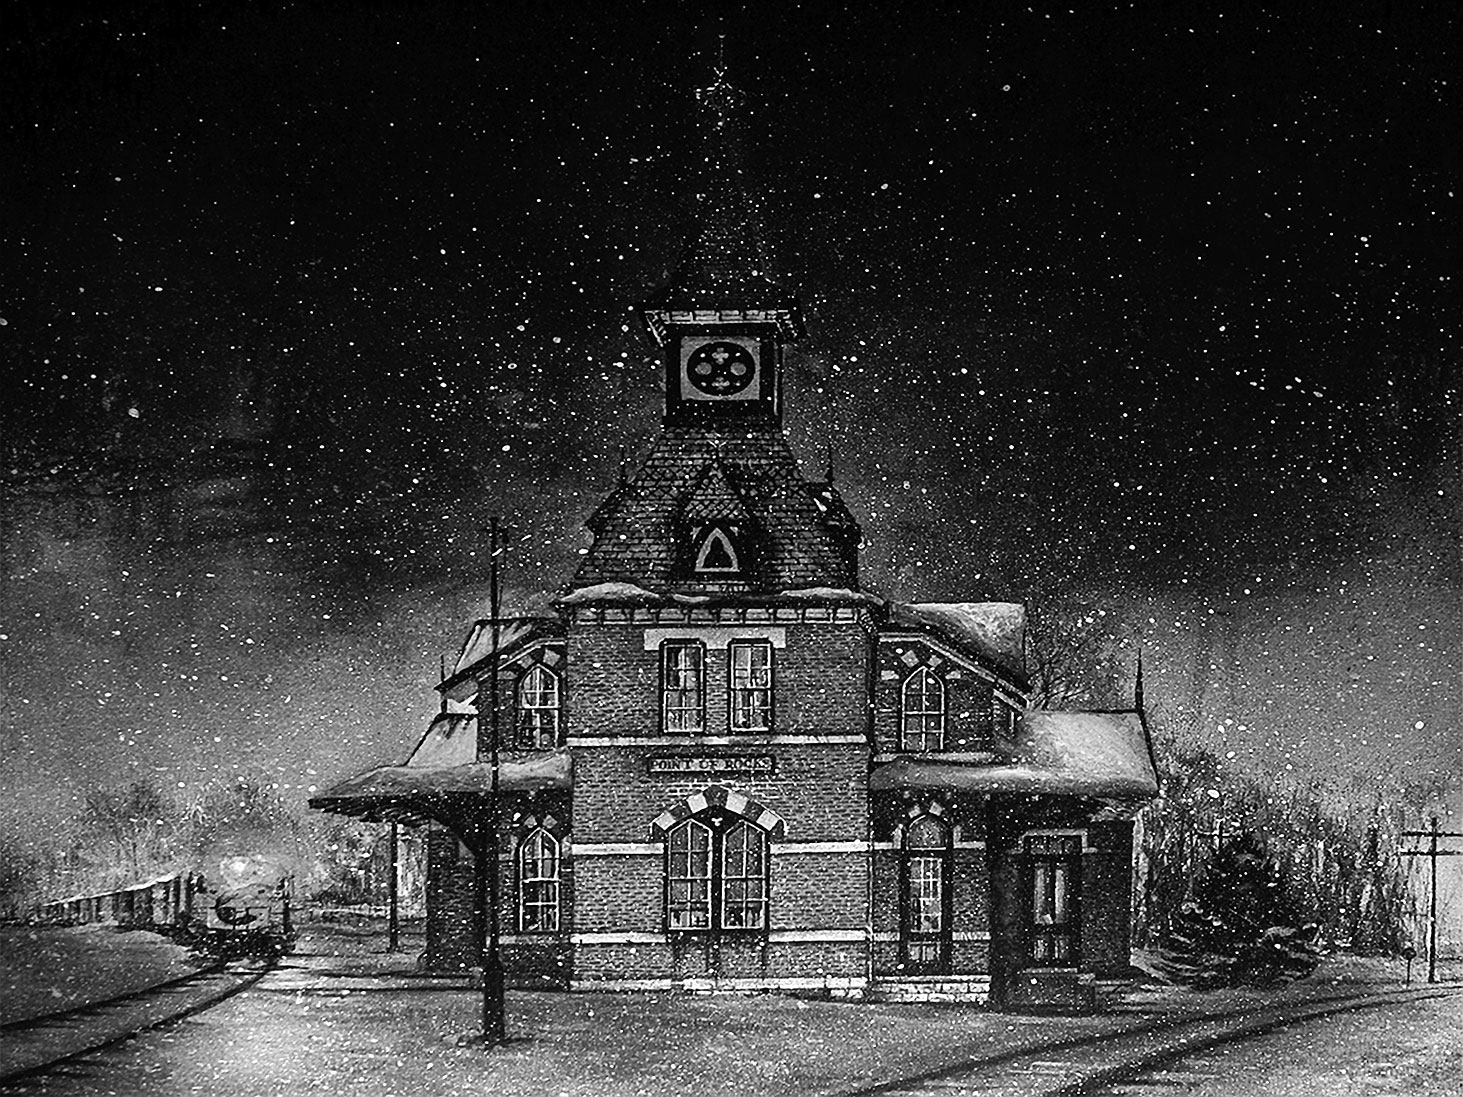 The Train Station by Mac Davey